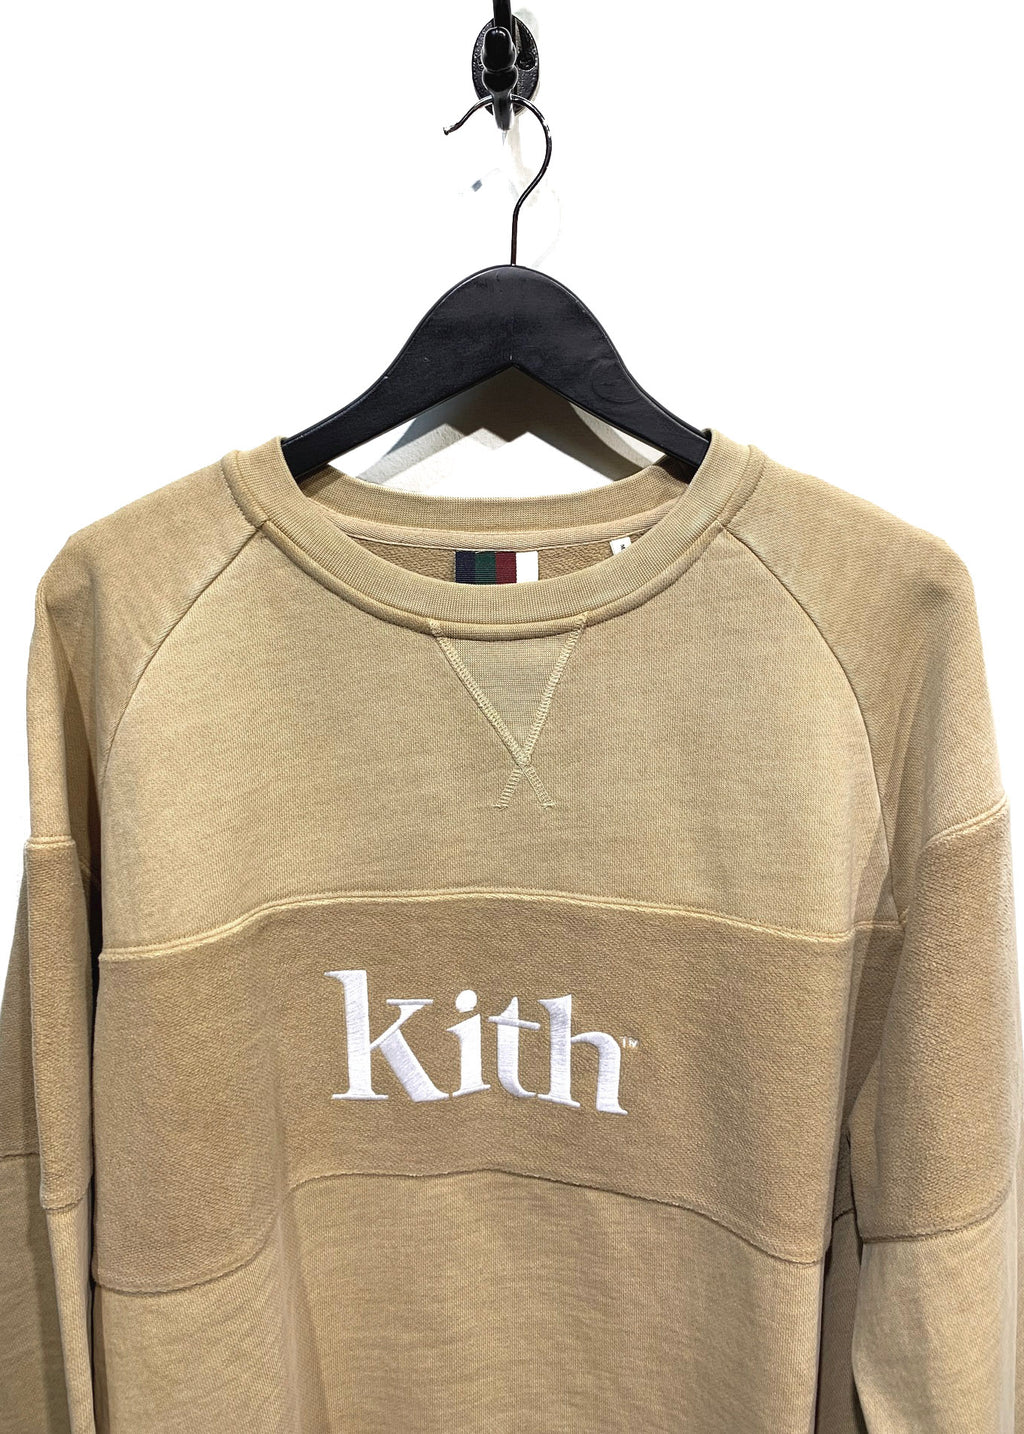 Kith Beige Logo Embroidered Sweatshirt